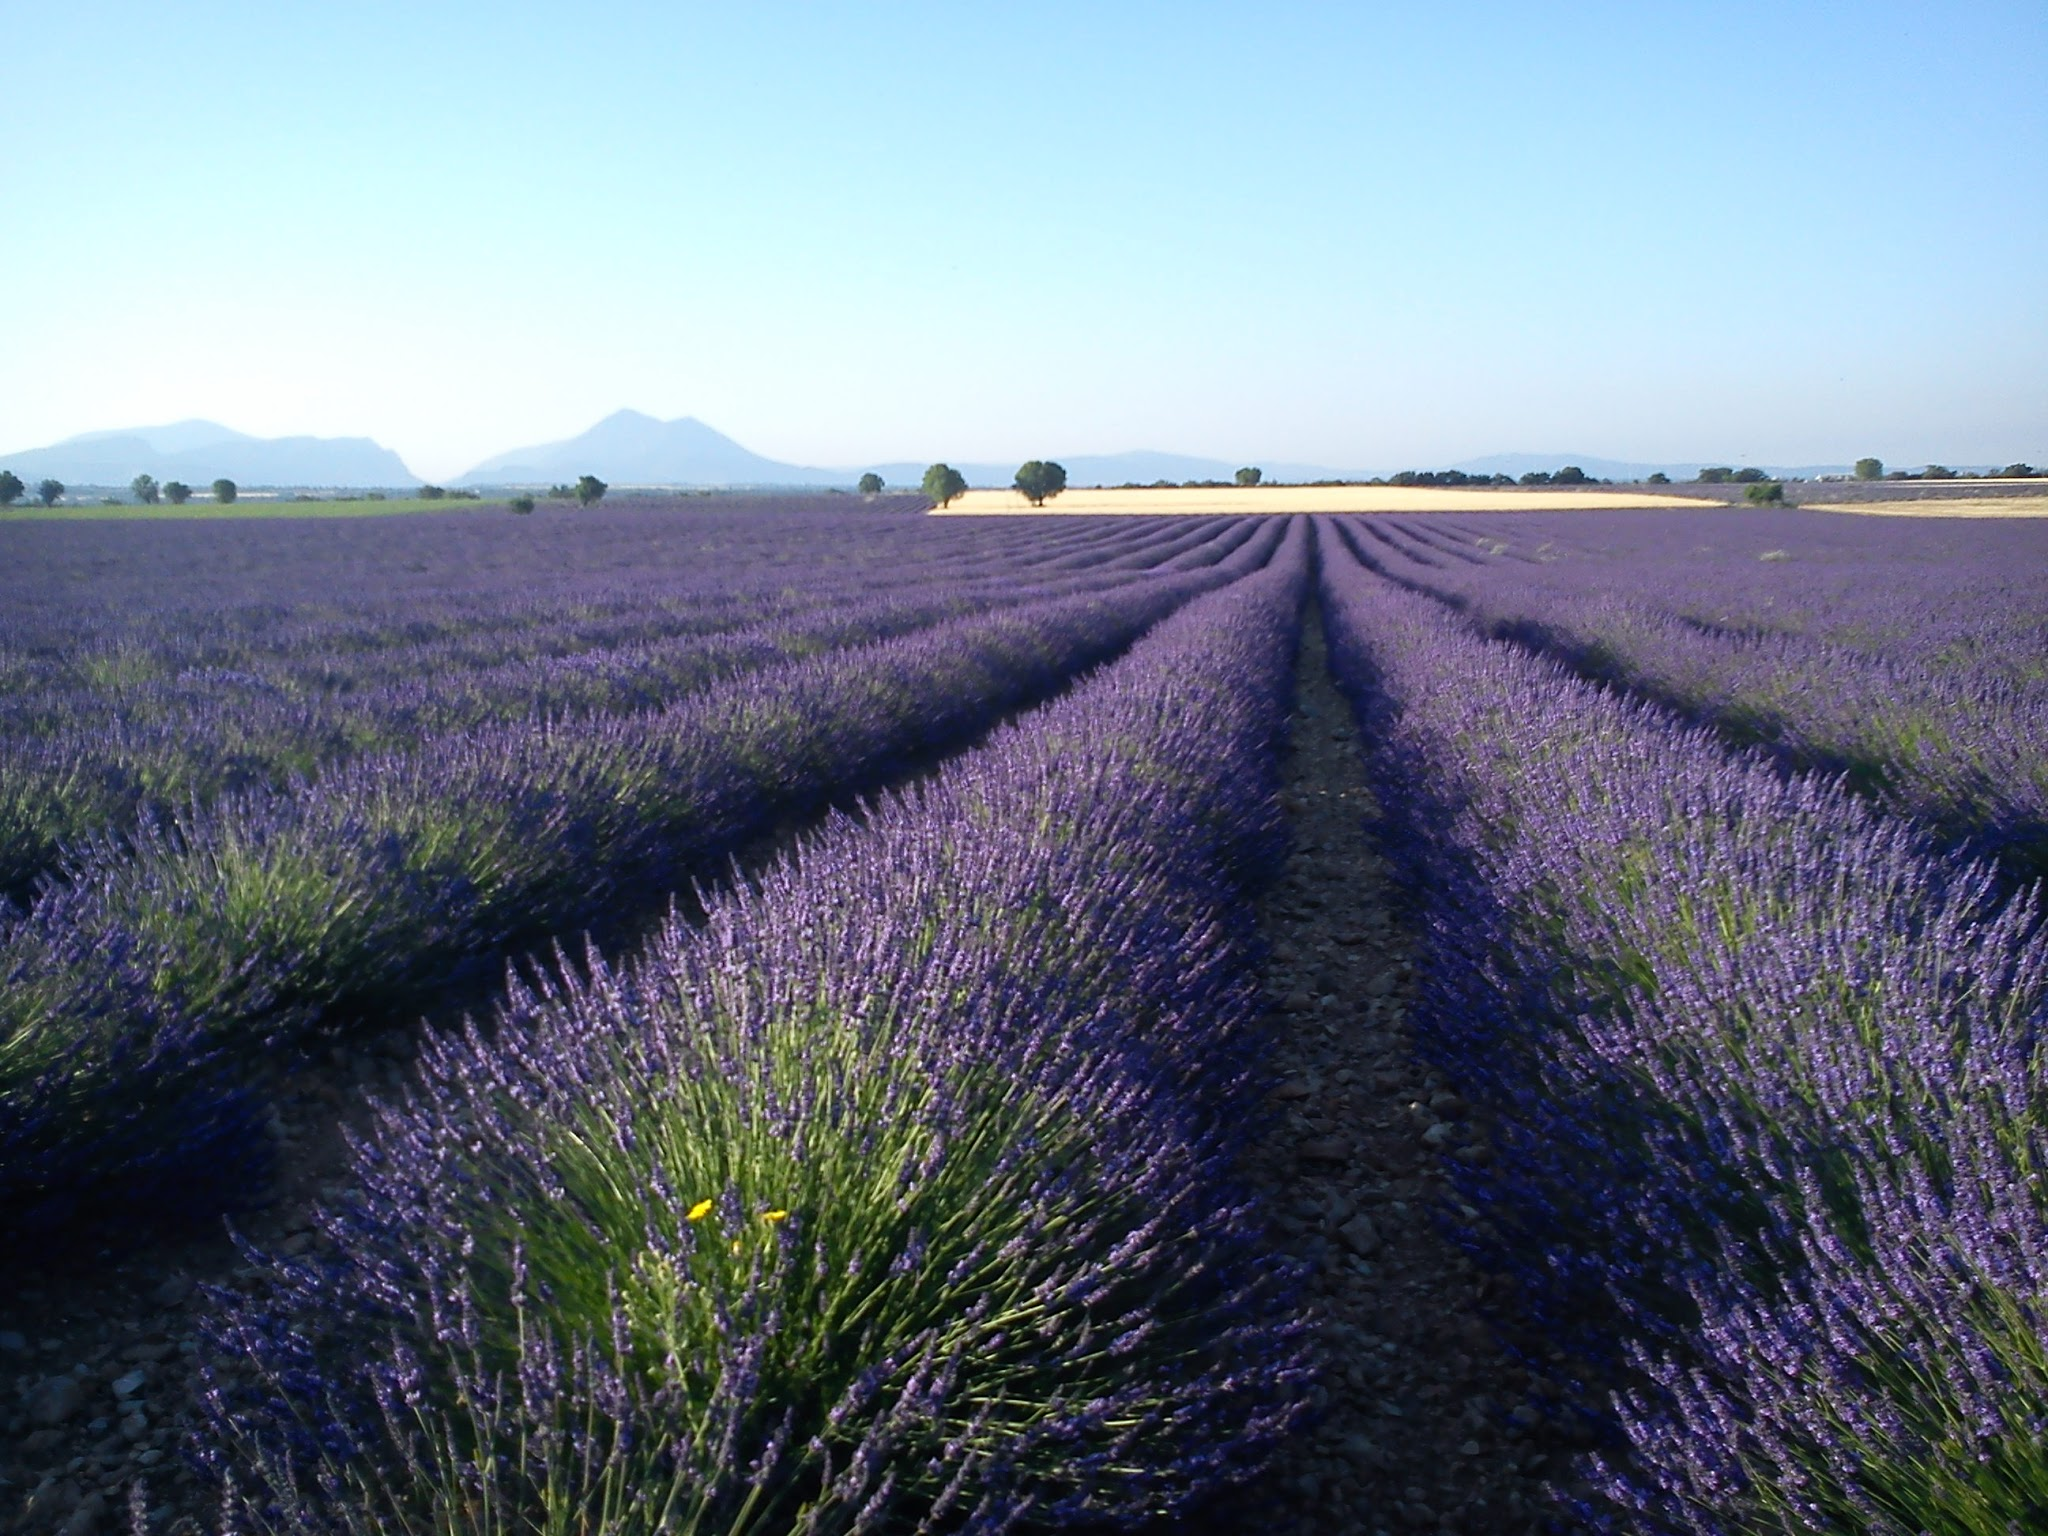 Cycling Through Lavender